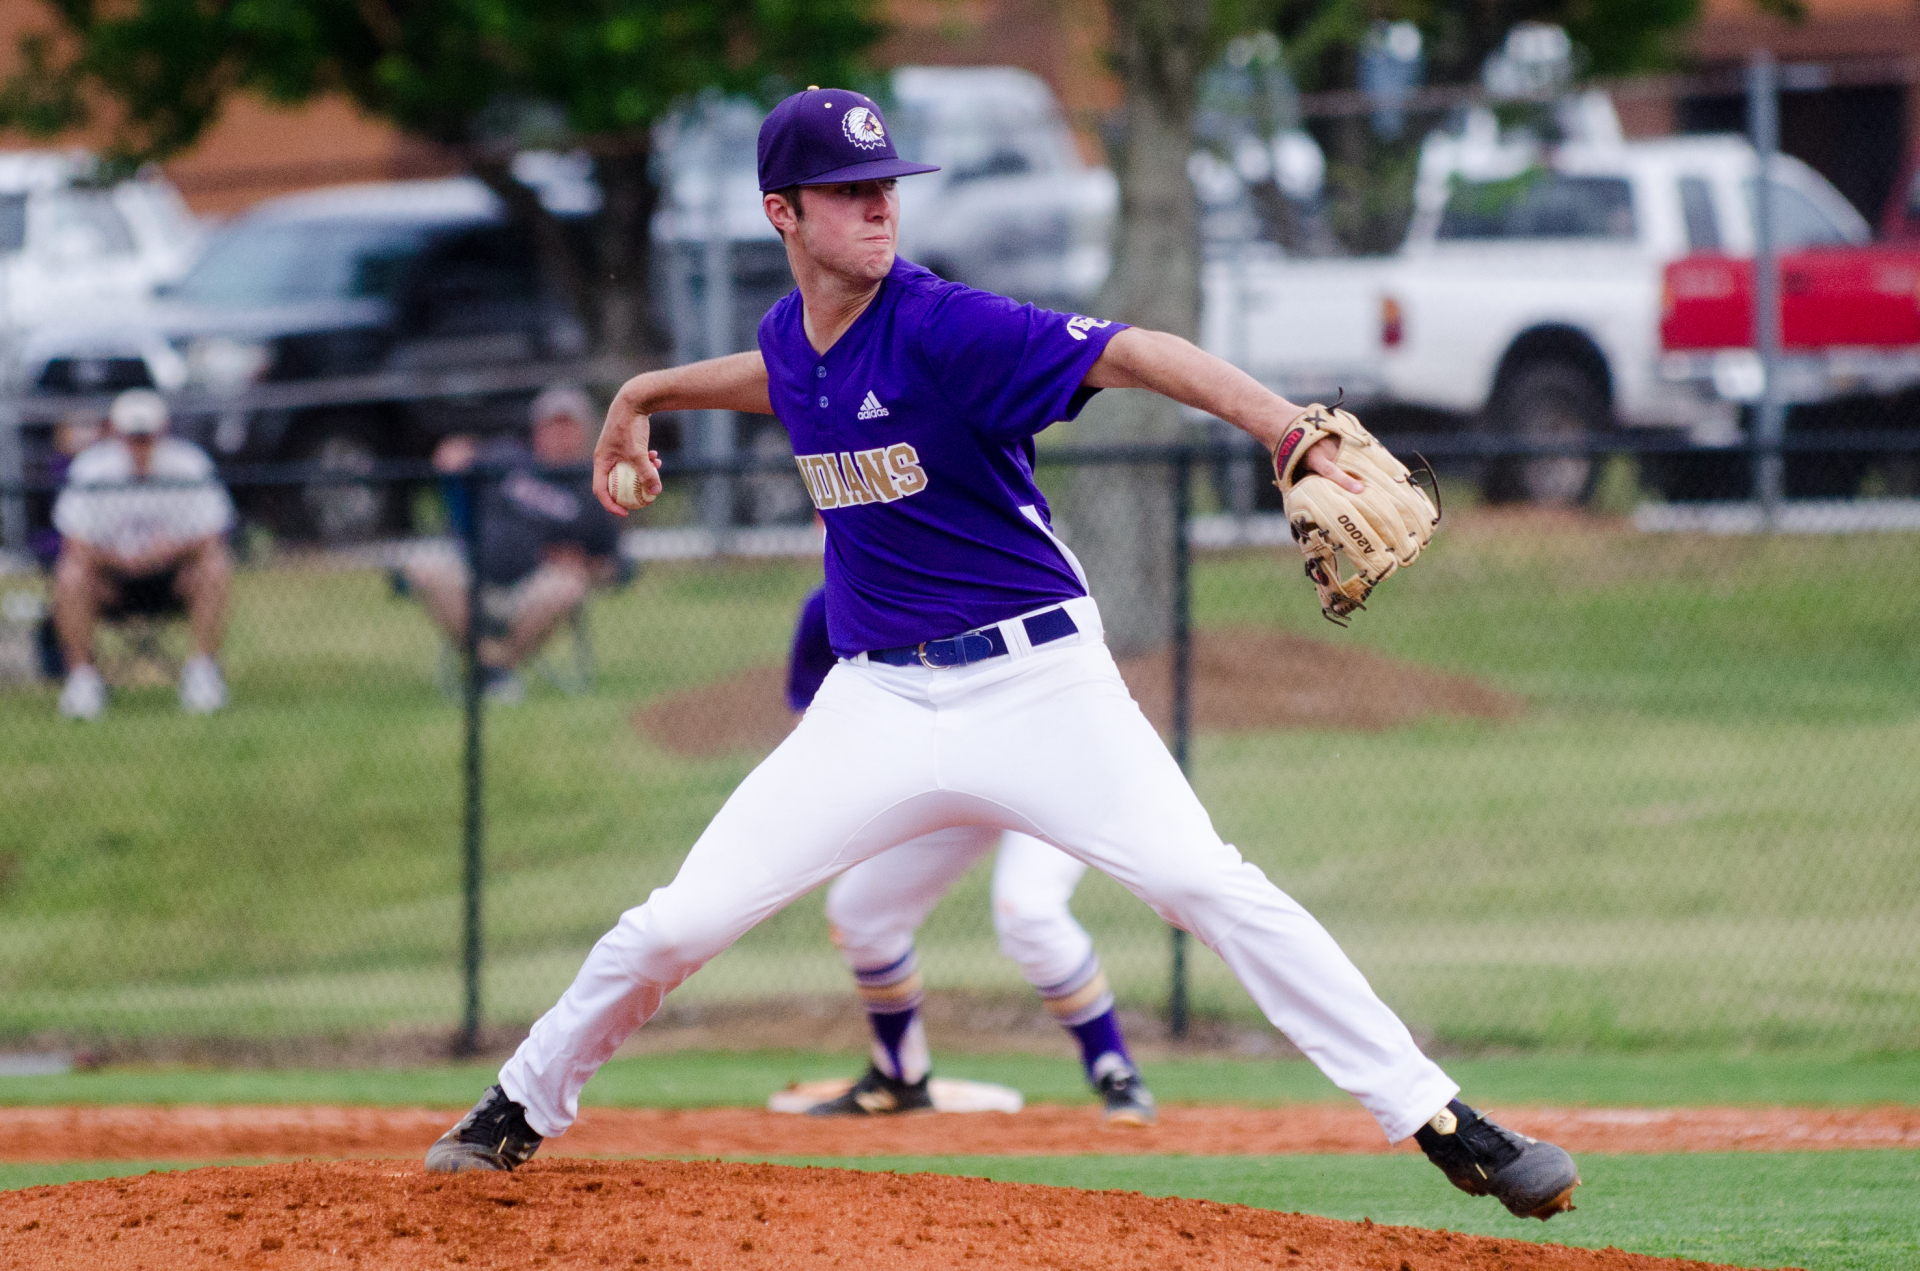 J.J. Freed picked up the decision on the mound for East Coweta in a 10-4 victory over Westlake.